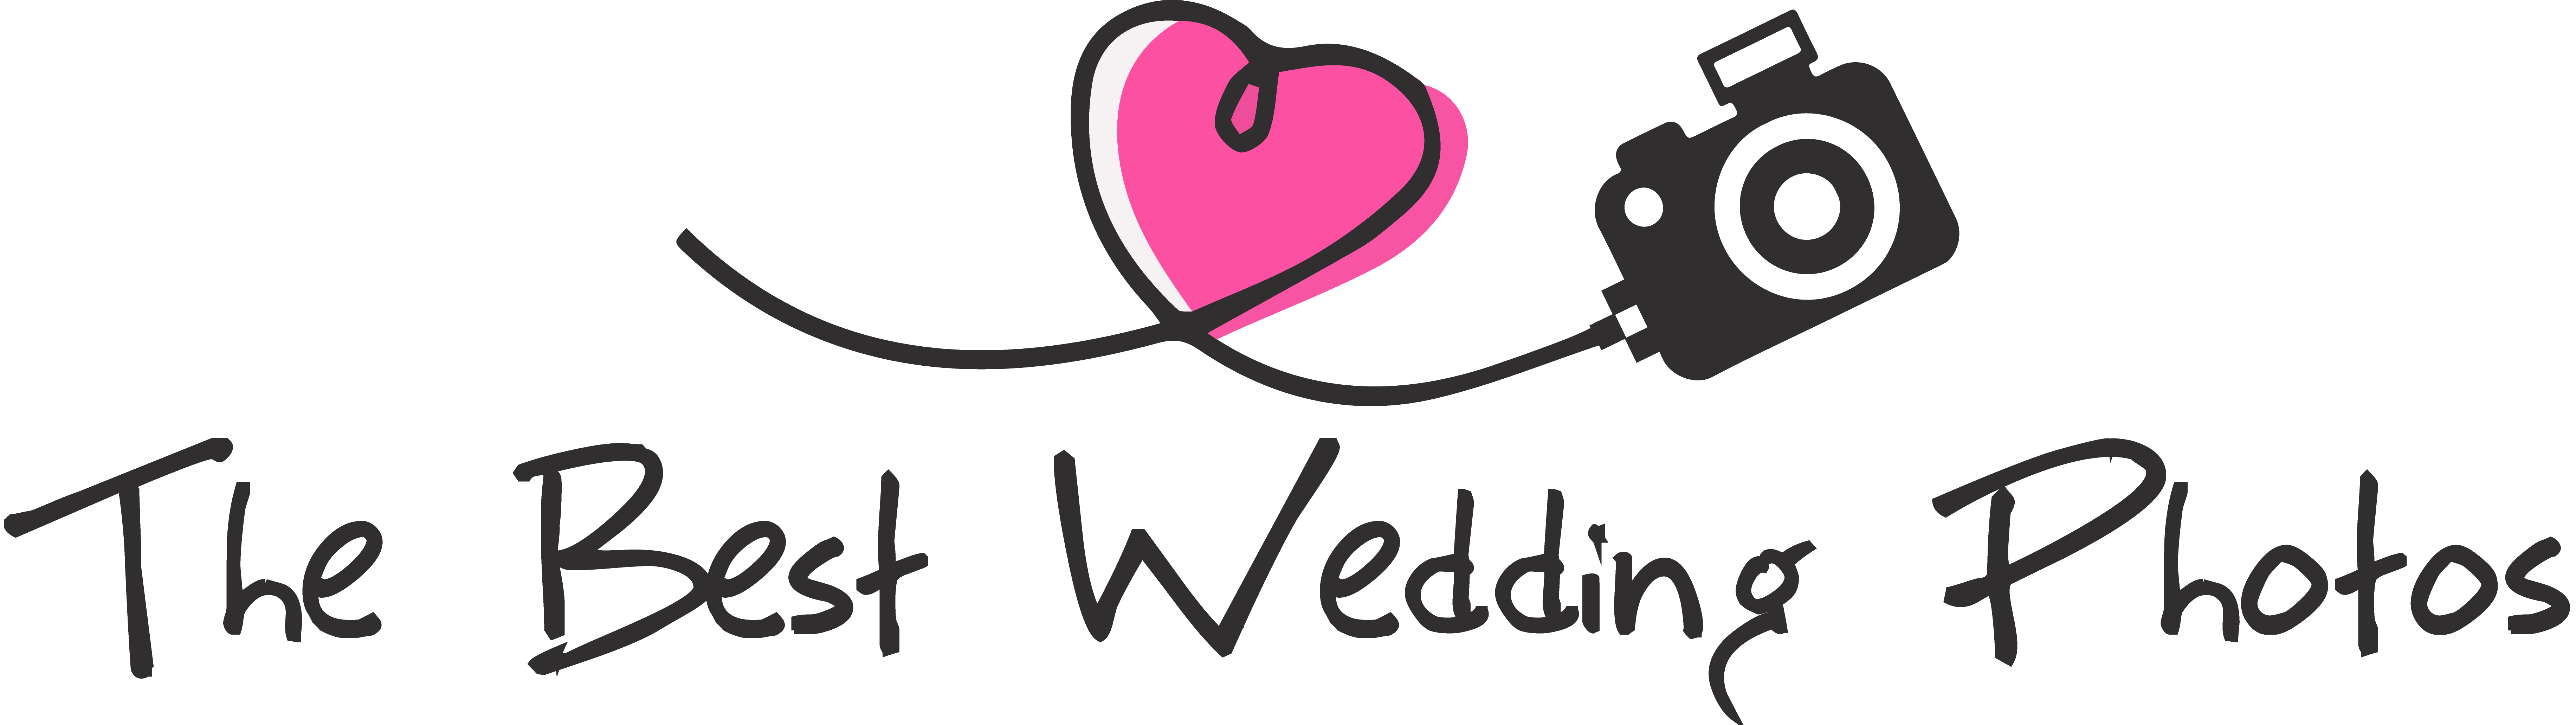 The best wedding videos logo